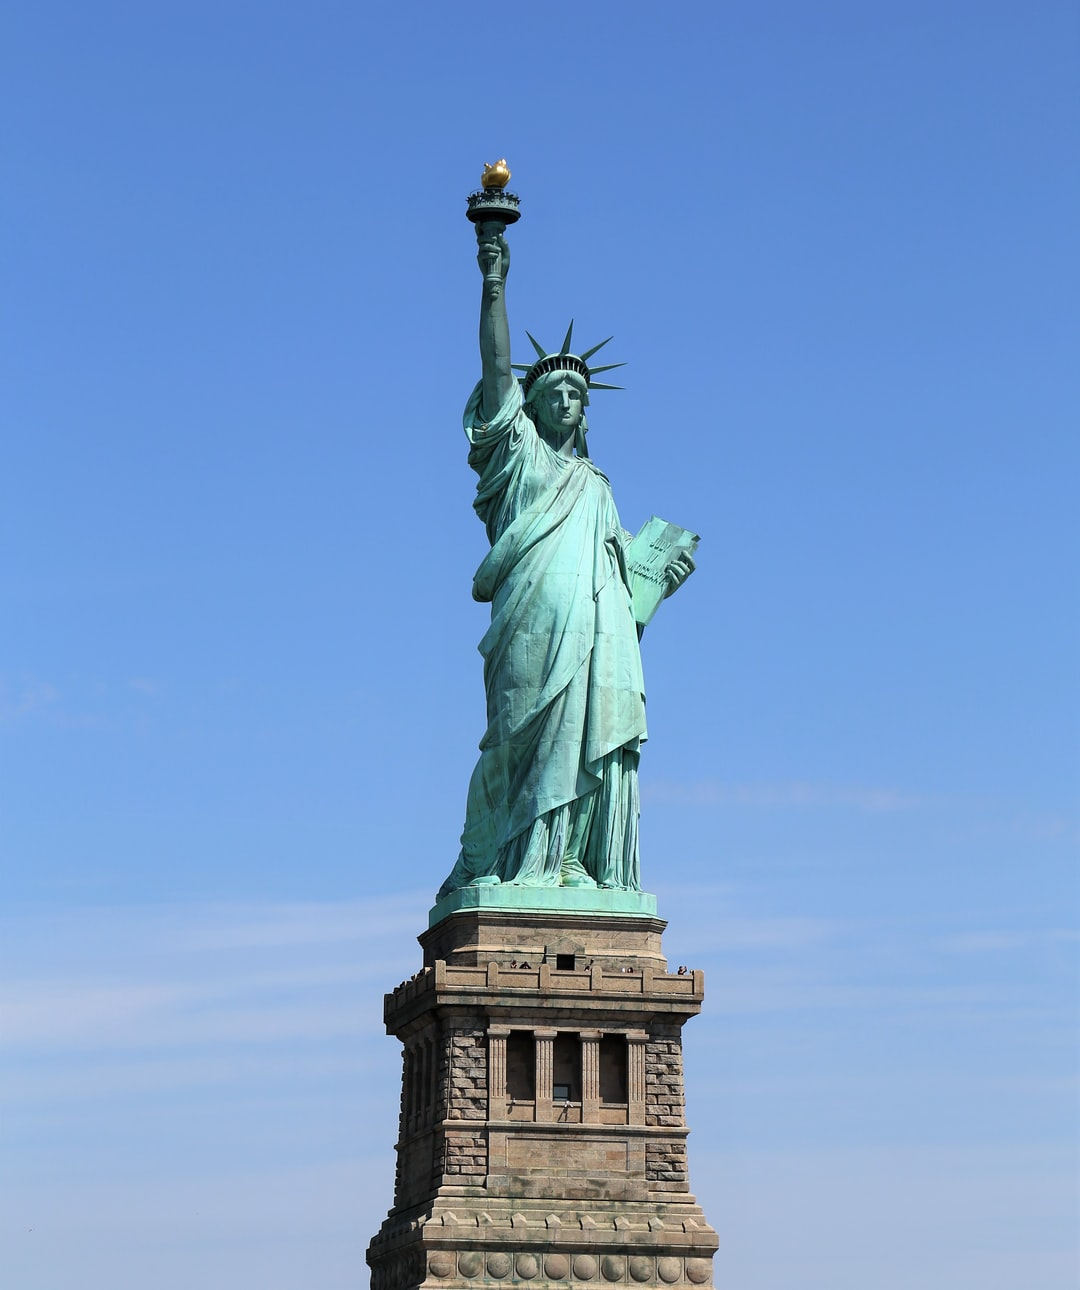 Statue Of Liberty, a rusting gift.